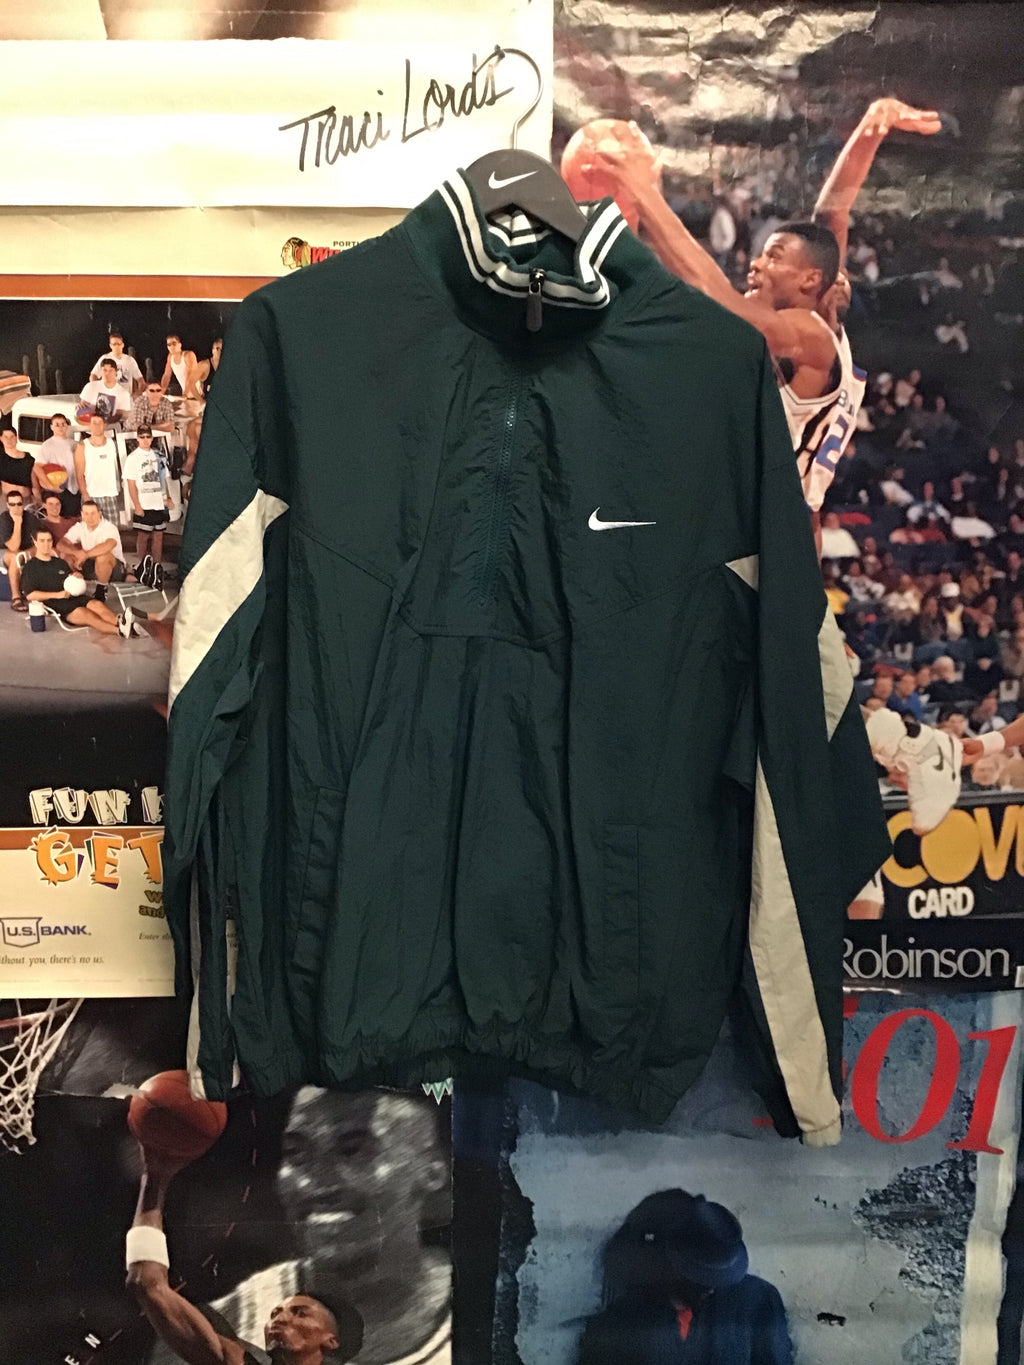 Nike Quarter Zip Windbreaker XL - Decades of dope